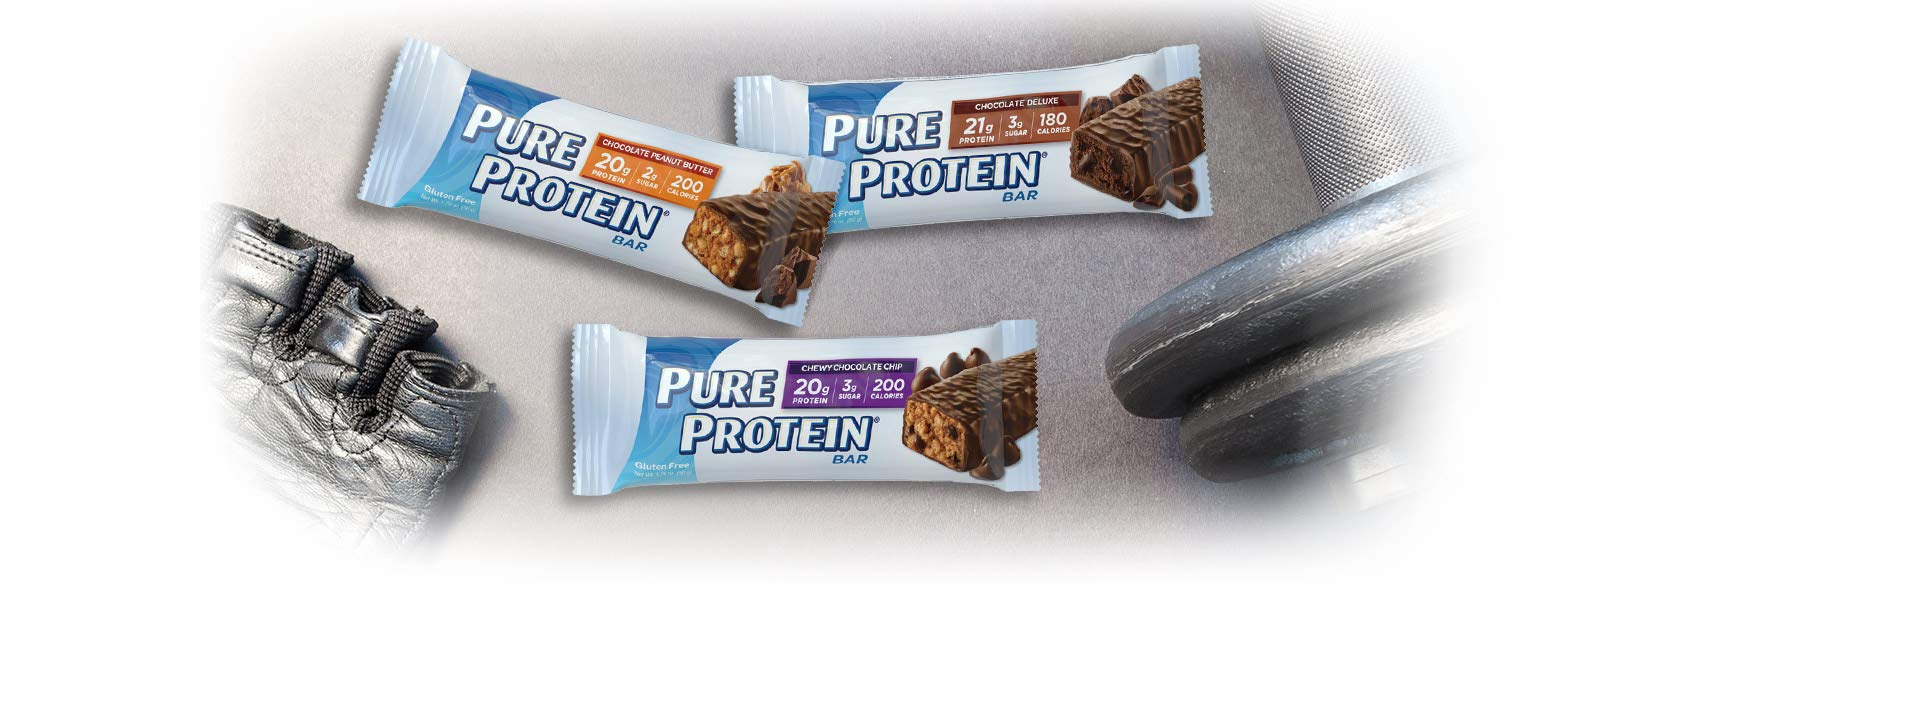 Pure Protein Bars, Healthy Snacks to Support Energy, Variety Pack, 1.76 oz, 18 Count by Pure Protein (Image #2)